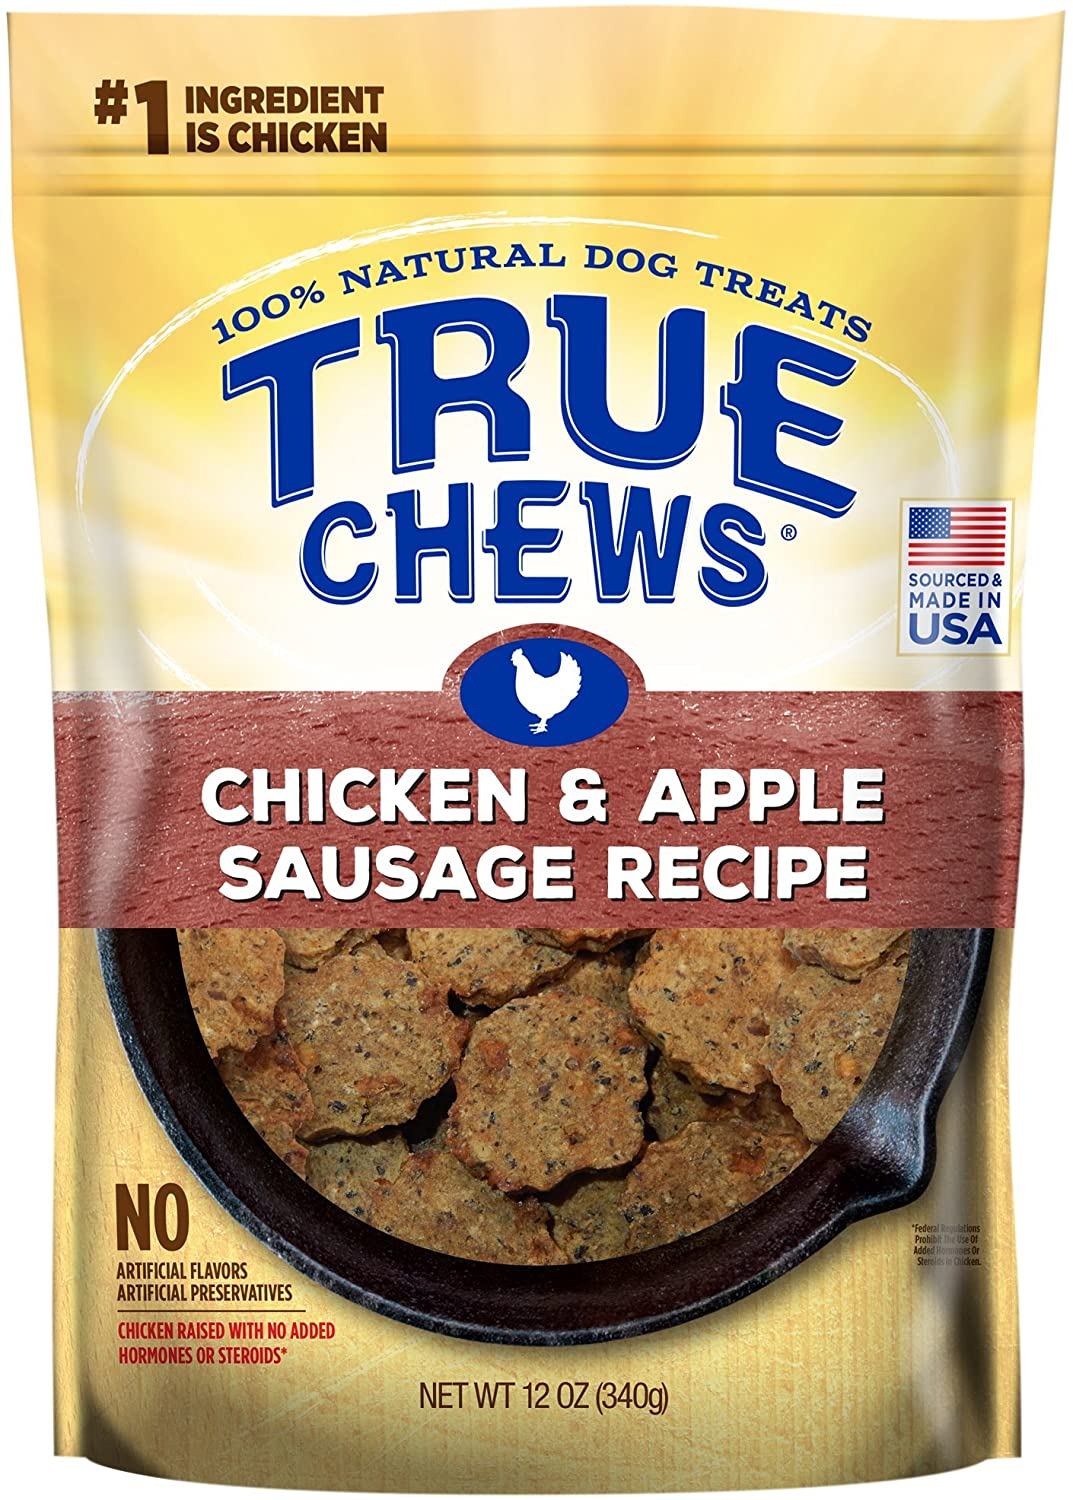 True Chews Chicken and Apple Sausage Recipe 12 oz